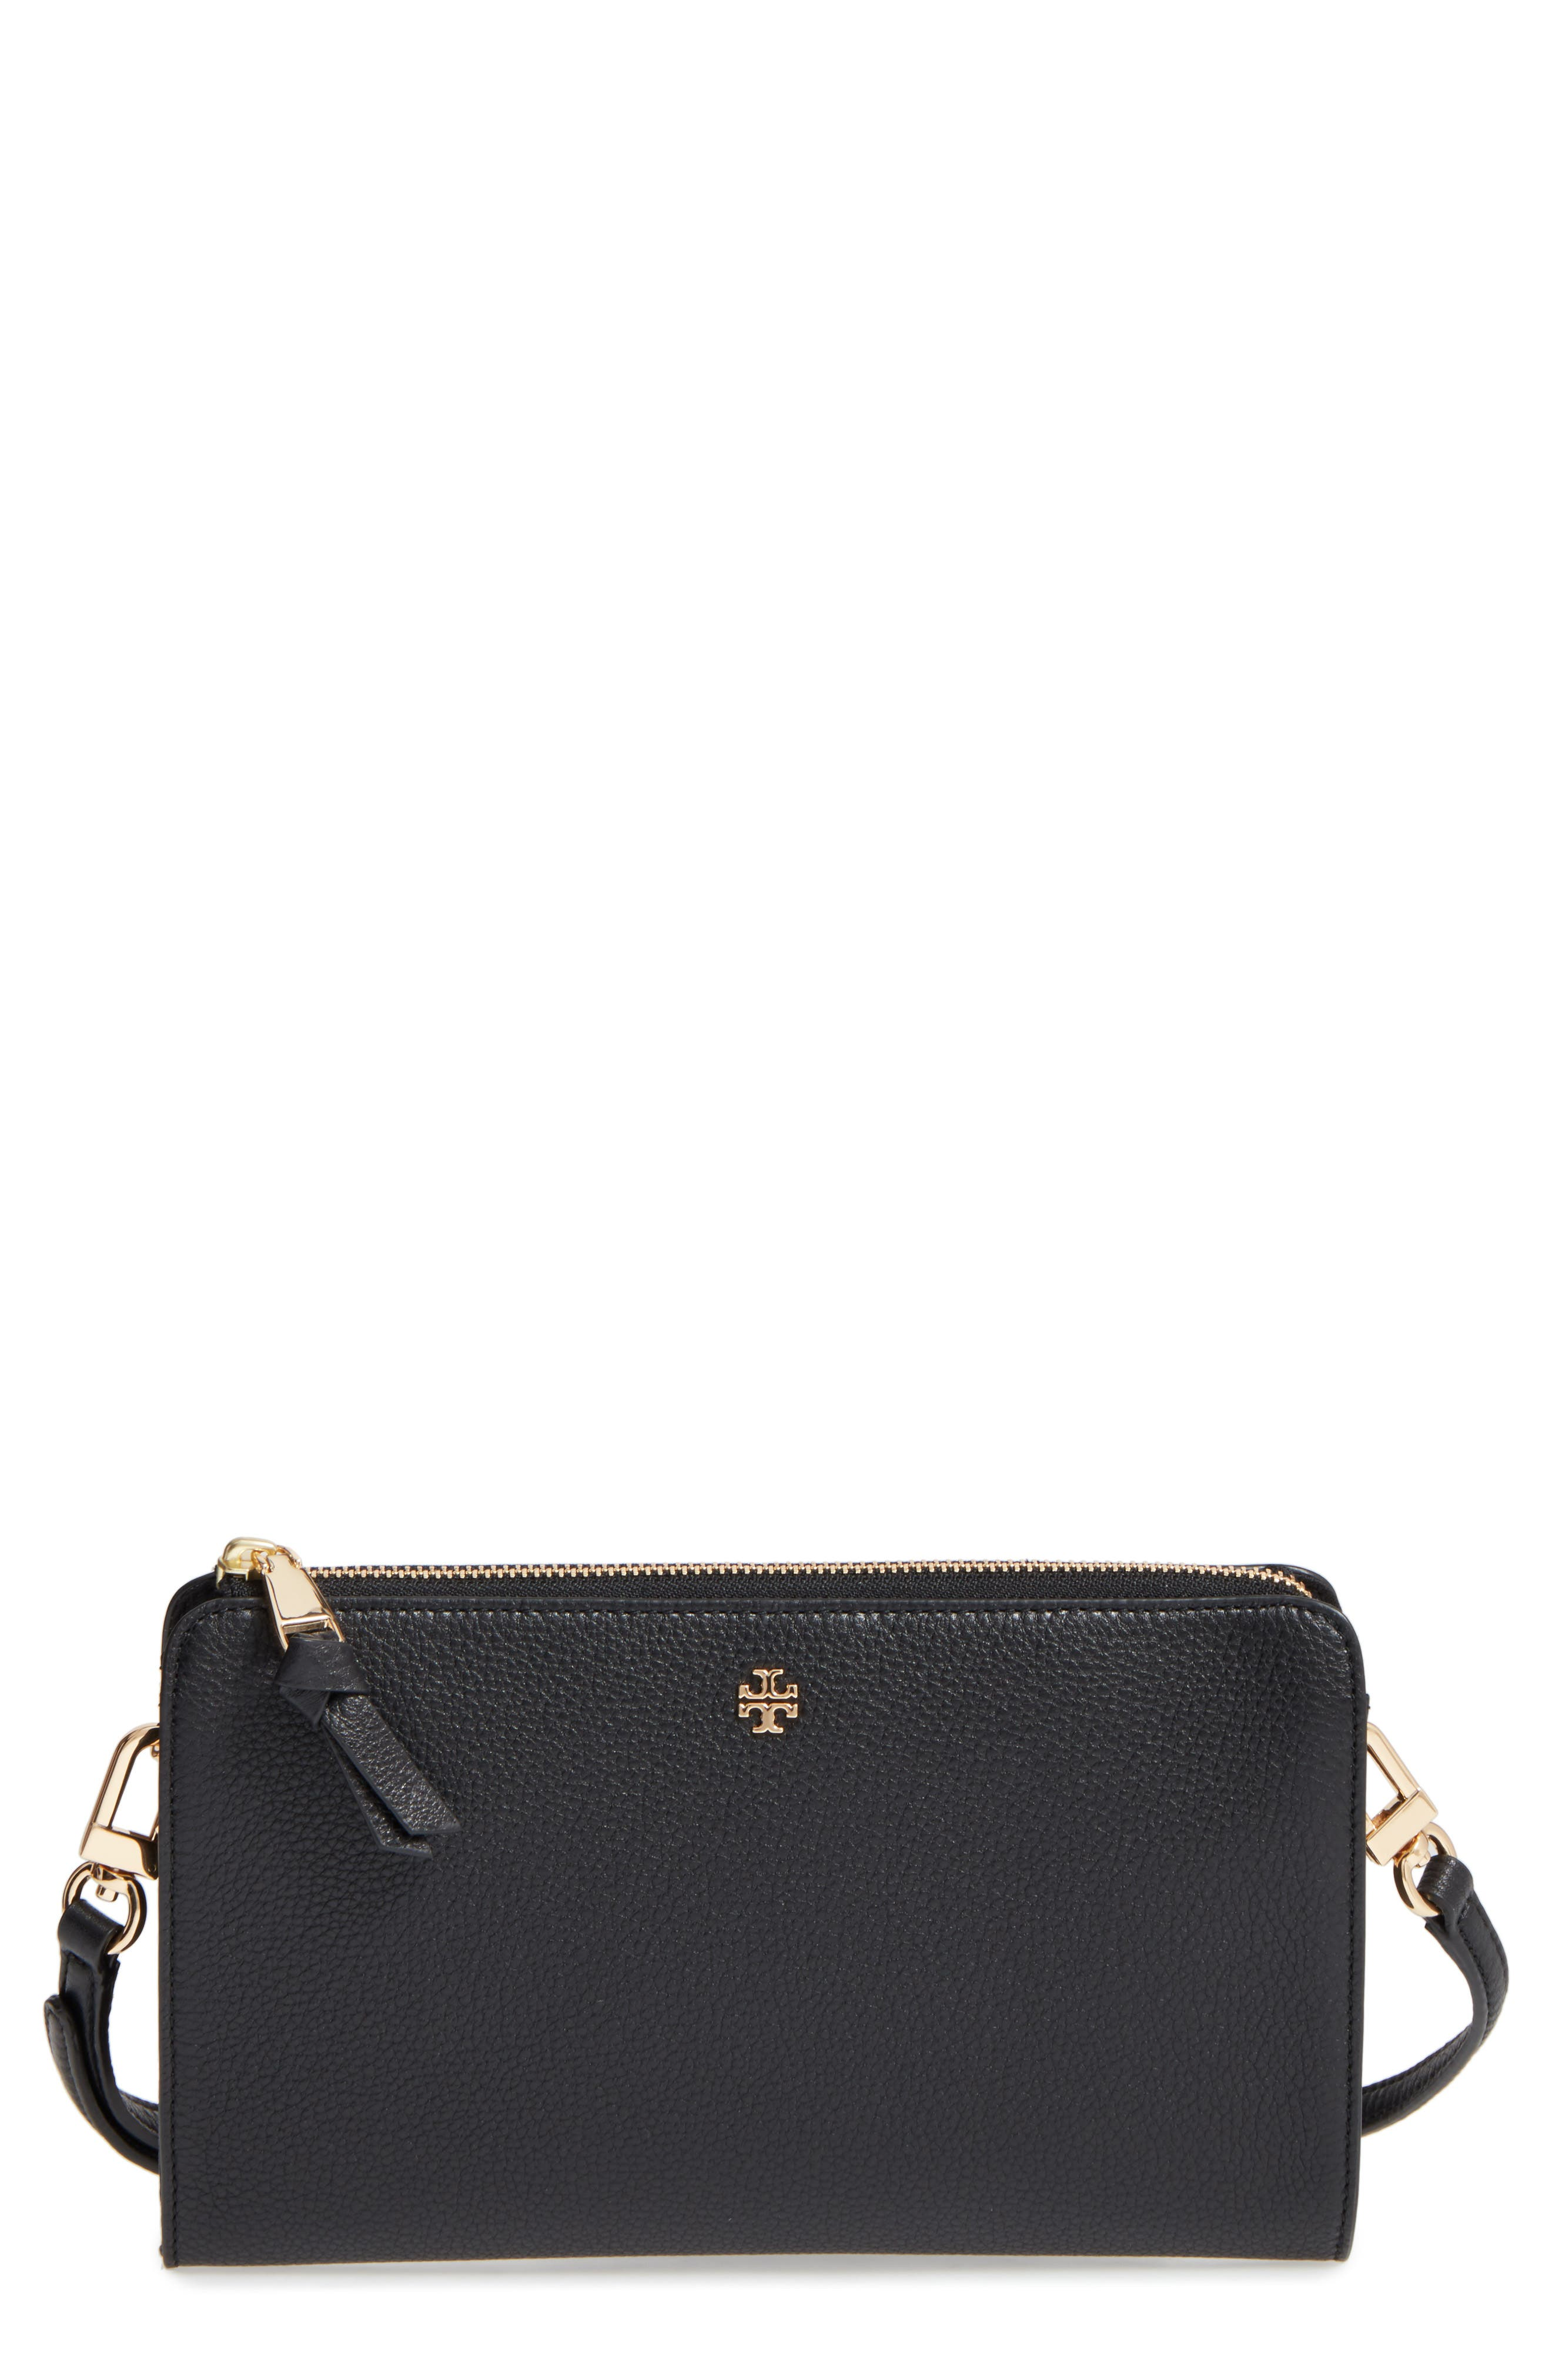 620e393bb798e 190041500635. Women s Tory Burch Robinson Leather Wallet On A Chain - Black